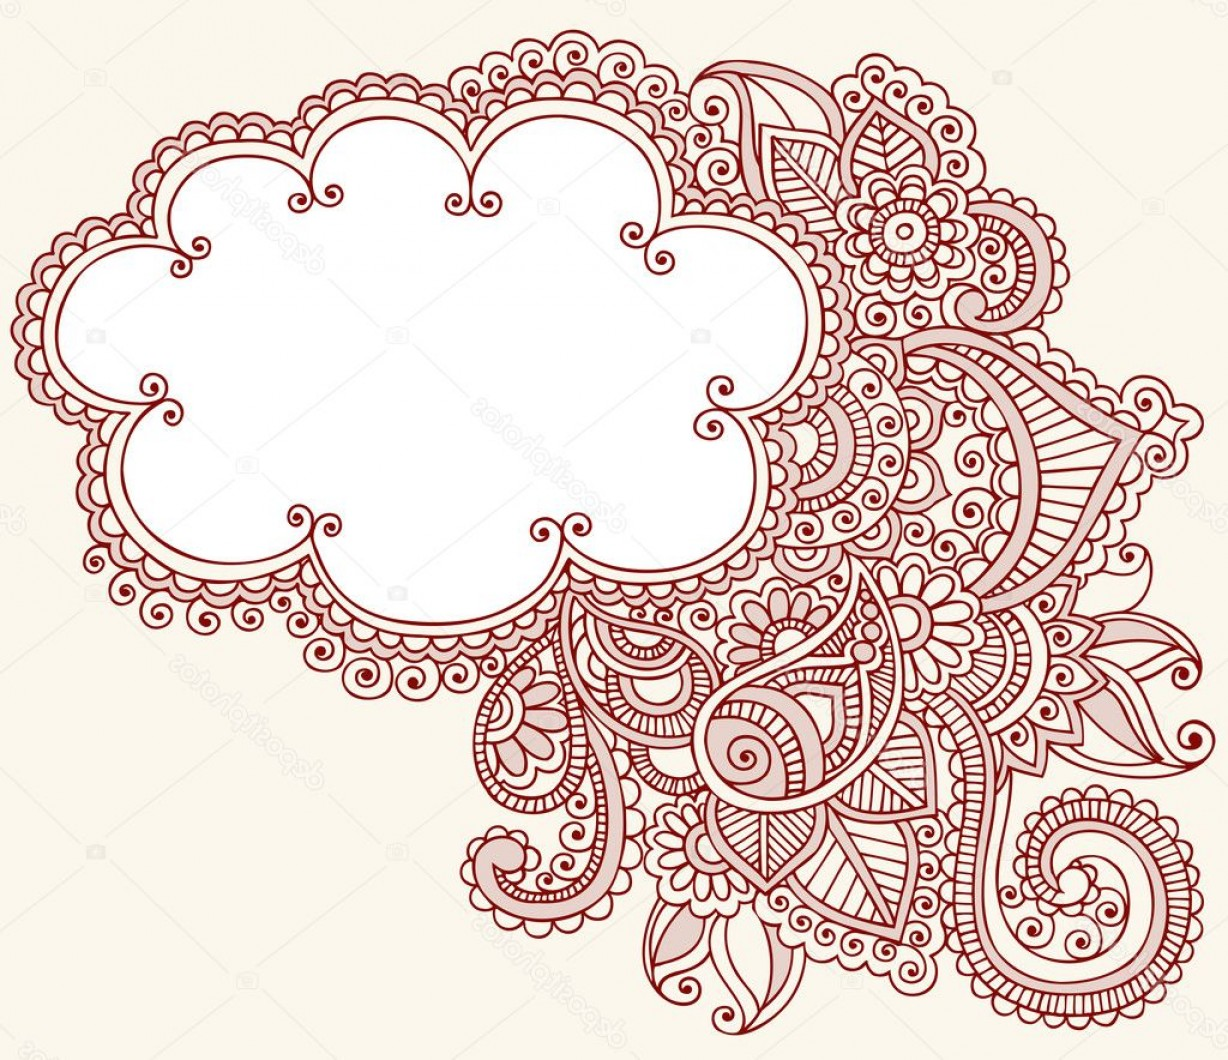 Simple Paisley Vector Border: Stock Illustration Henna Paisley Flower Doodle Cloud